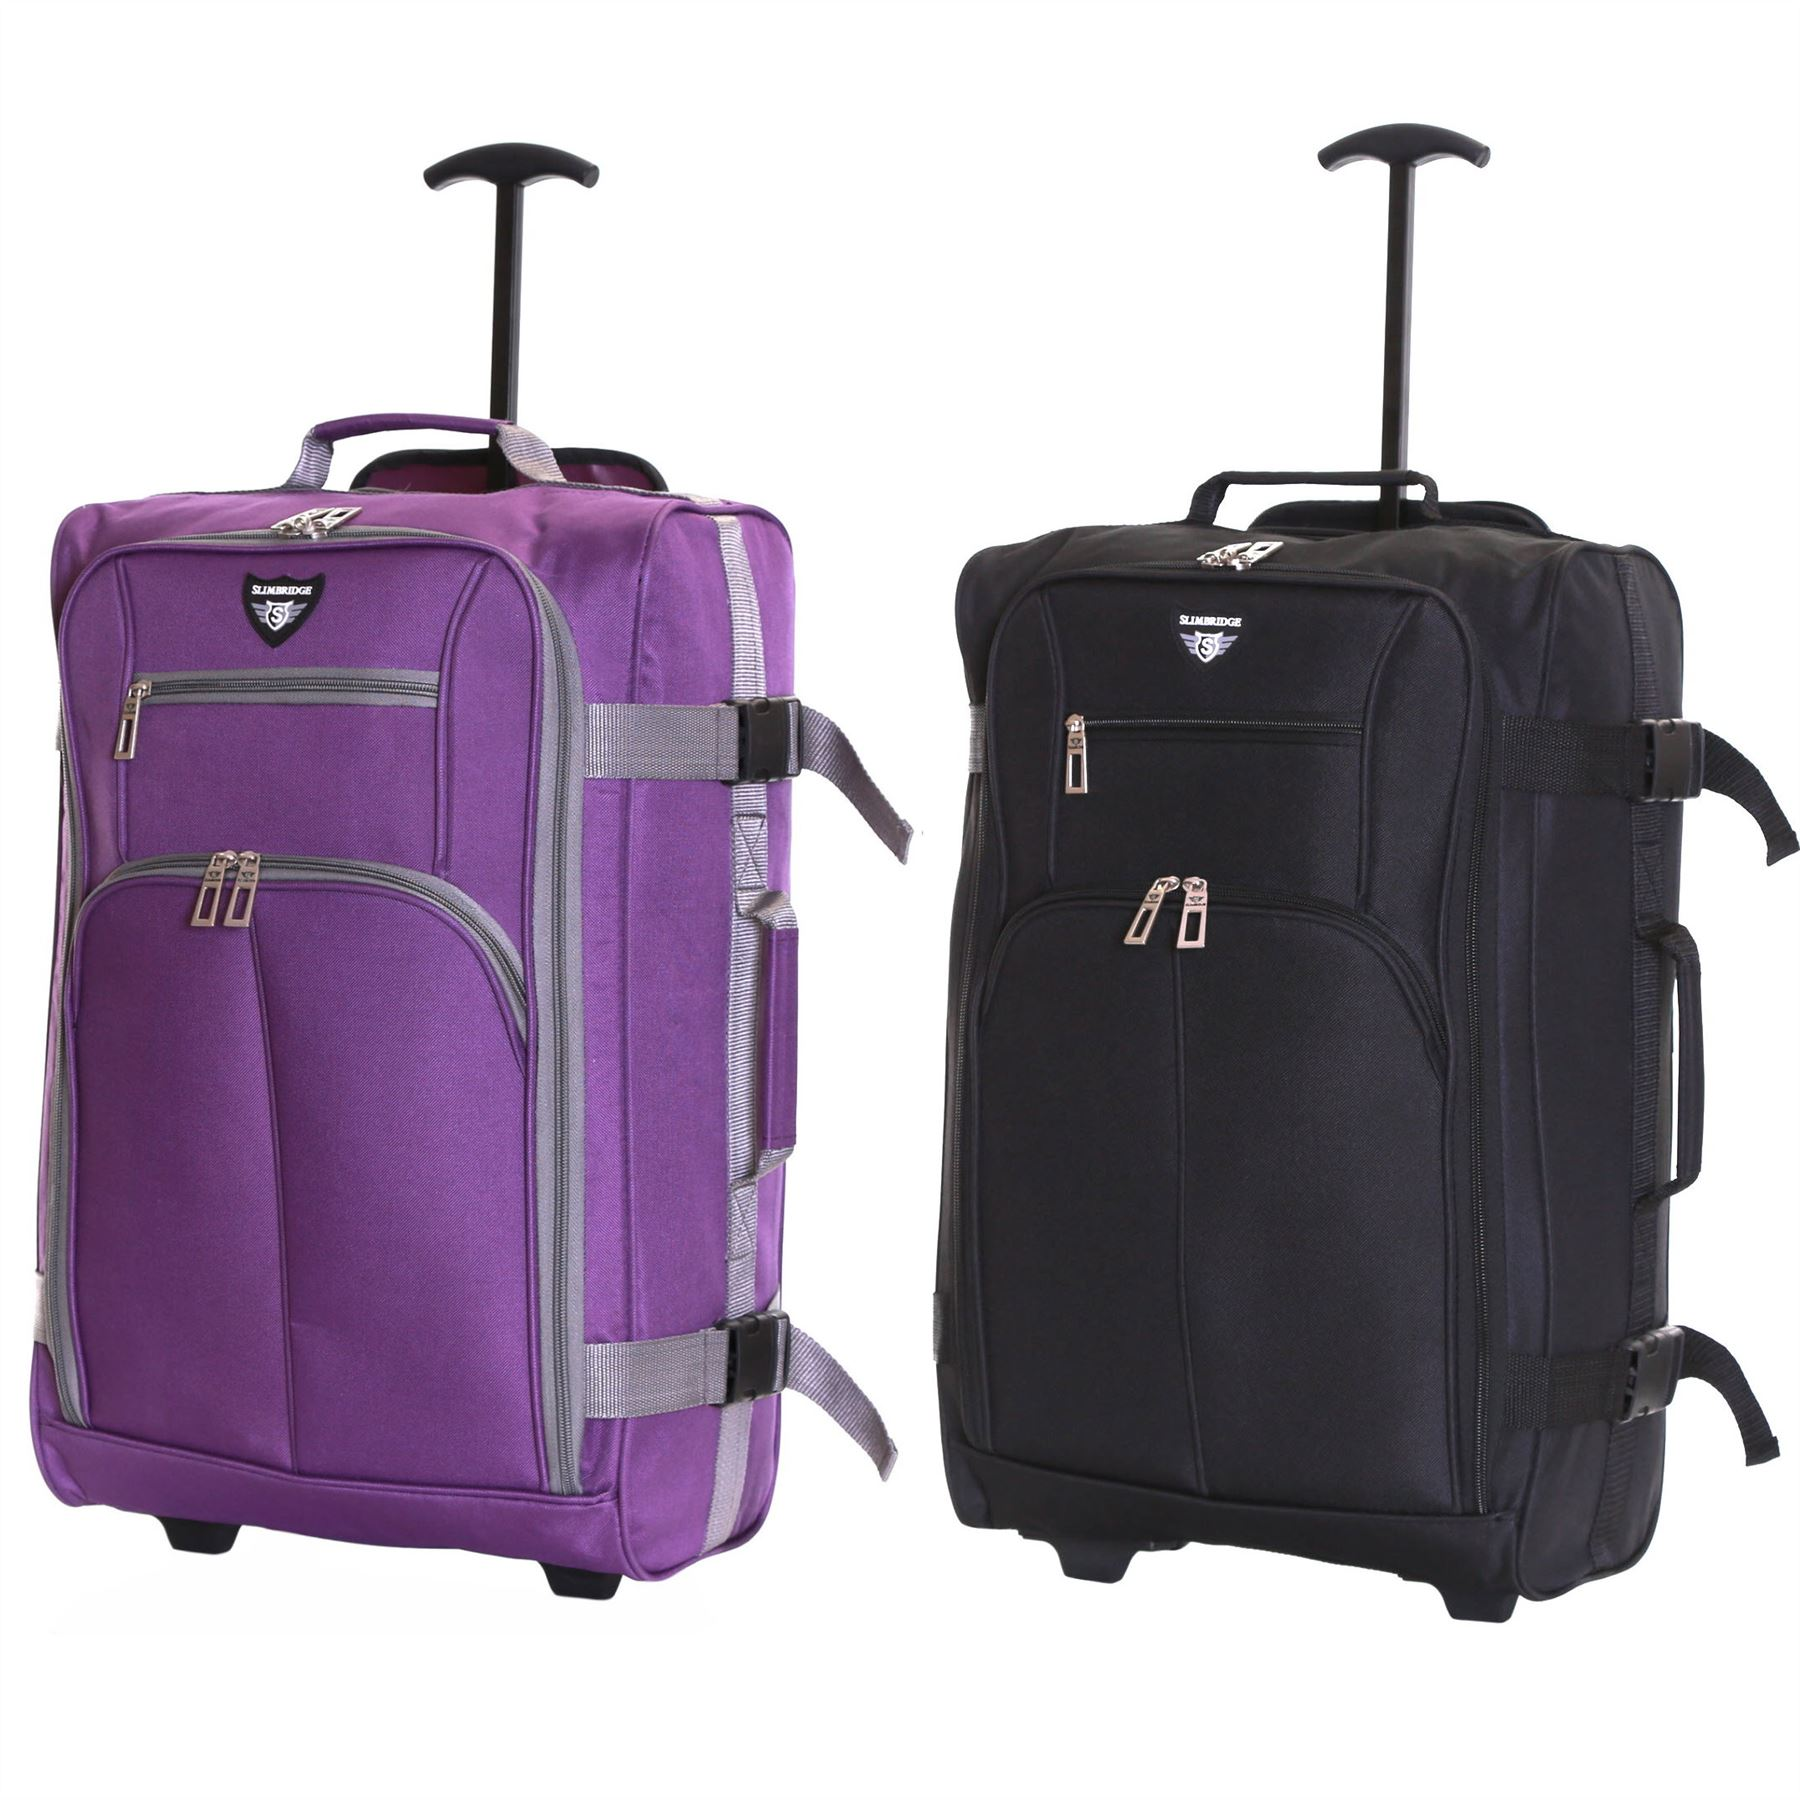 Ryanair-Easyjet-Set-of-2-Cabin-Approved-Hand-Trolley-Suitcases-Luggage-Case-Bags thumbnail 6